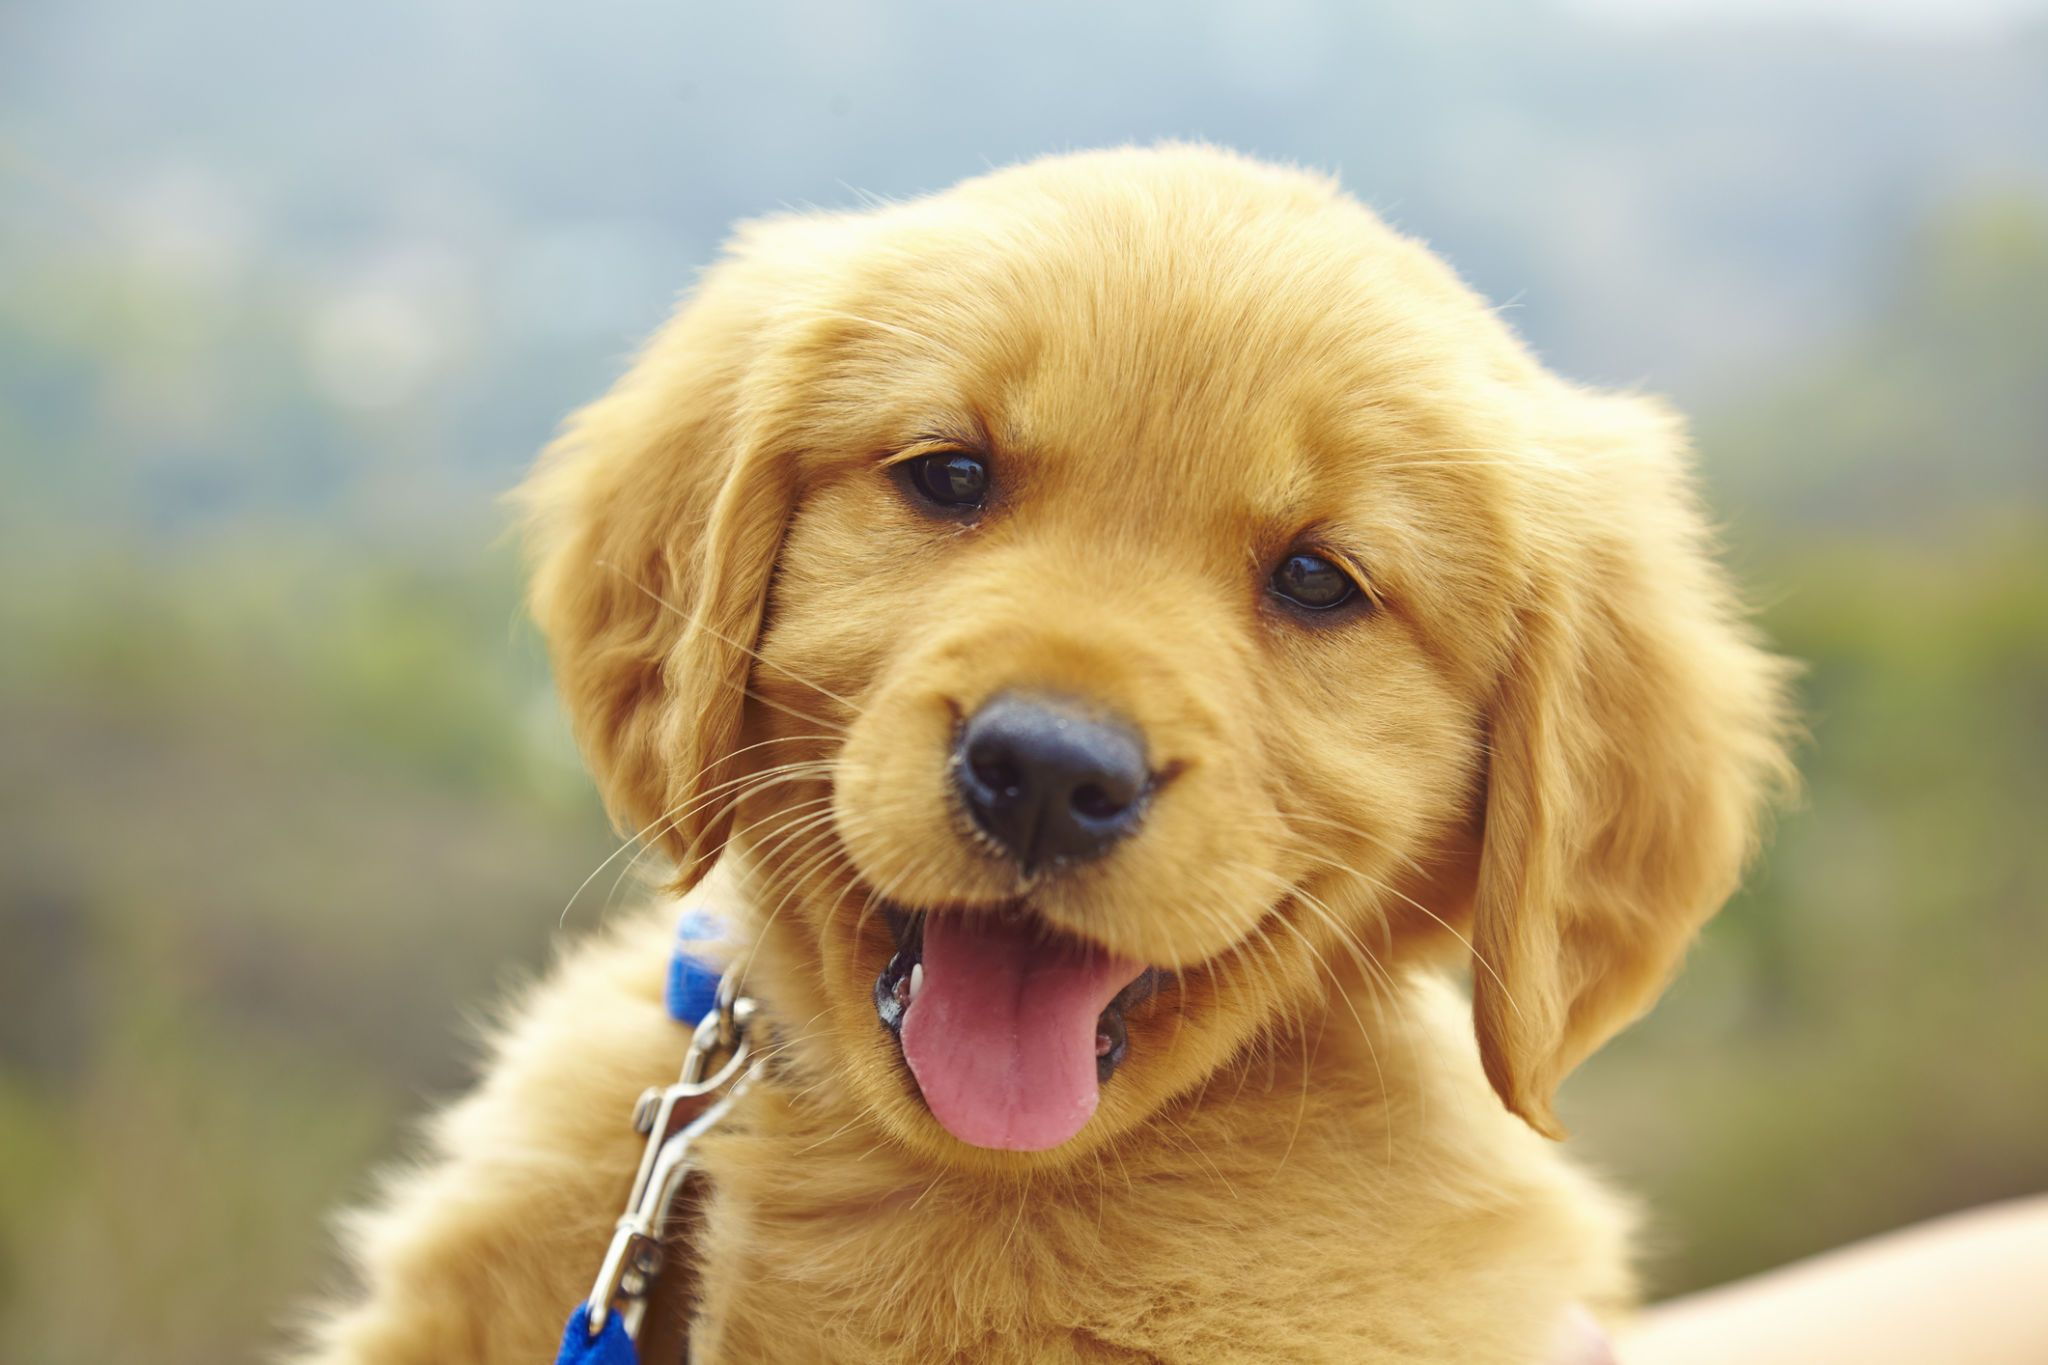 Dog Owners Take More Pictures Of Their Pet Than Their Spouse, New Study Says